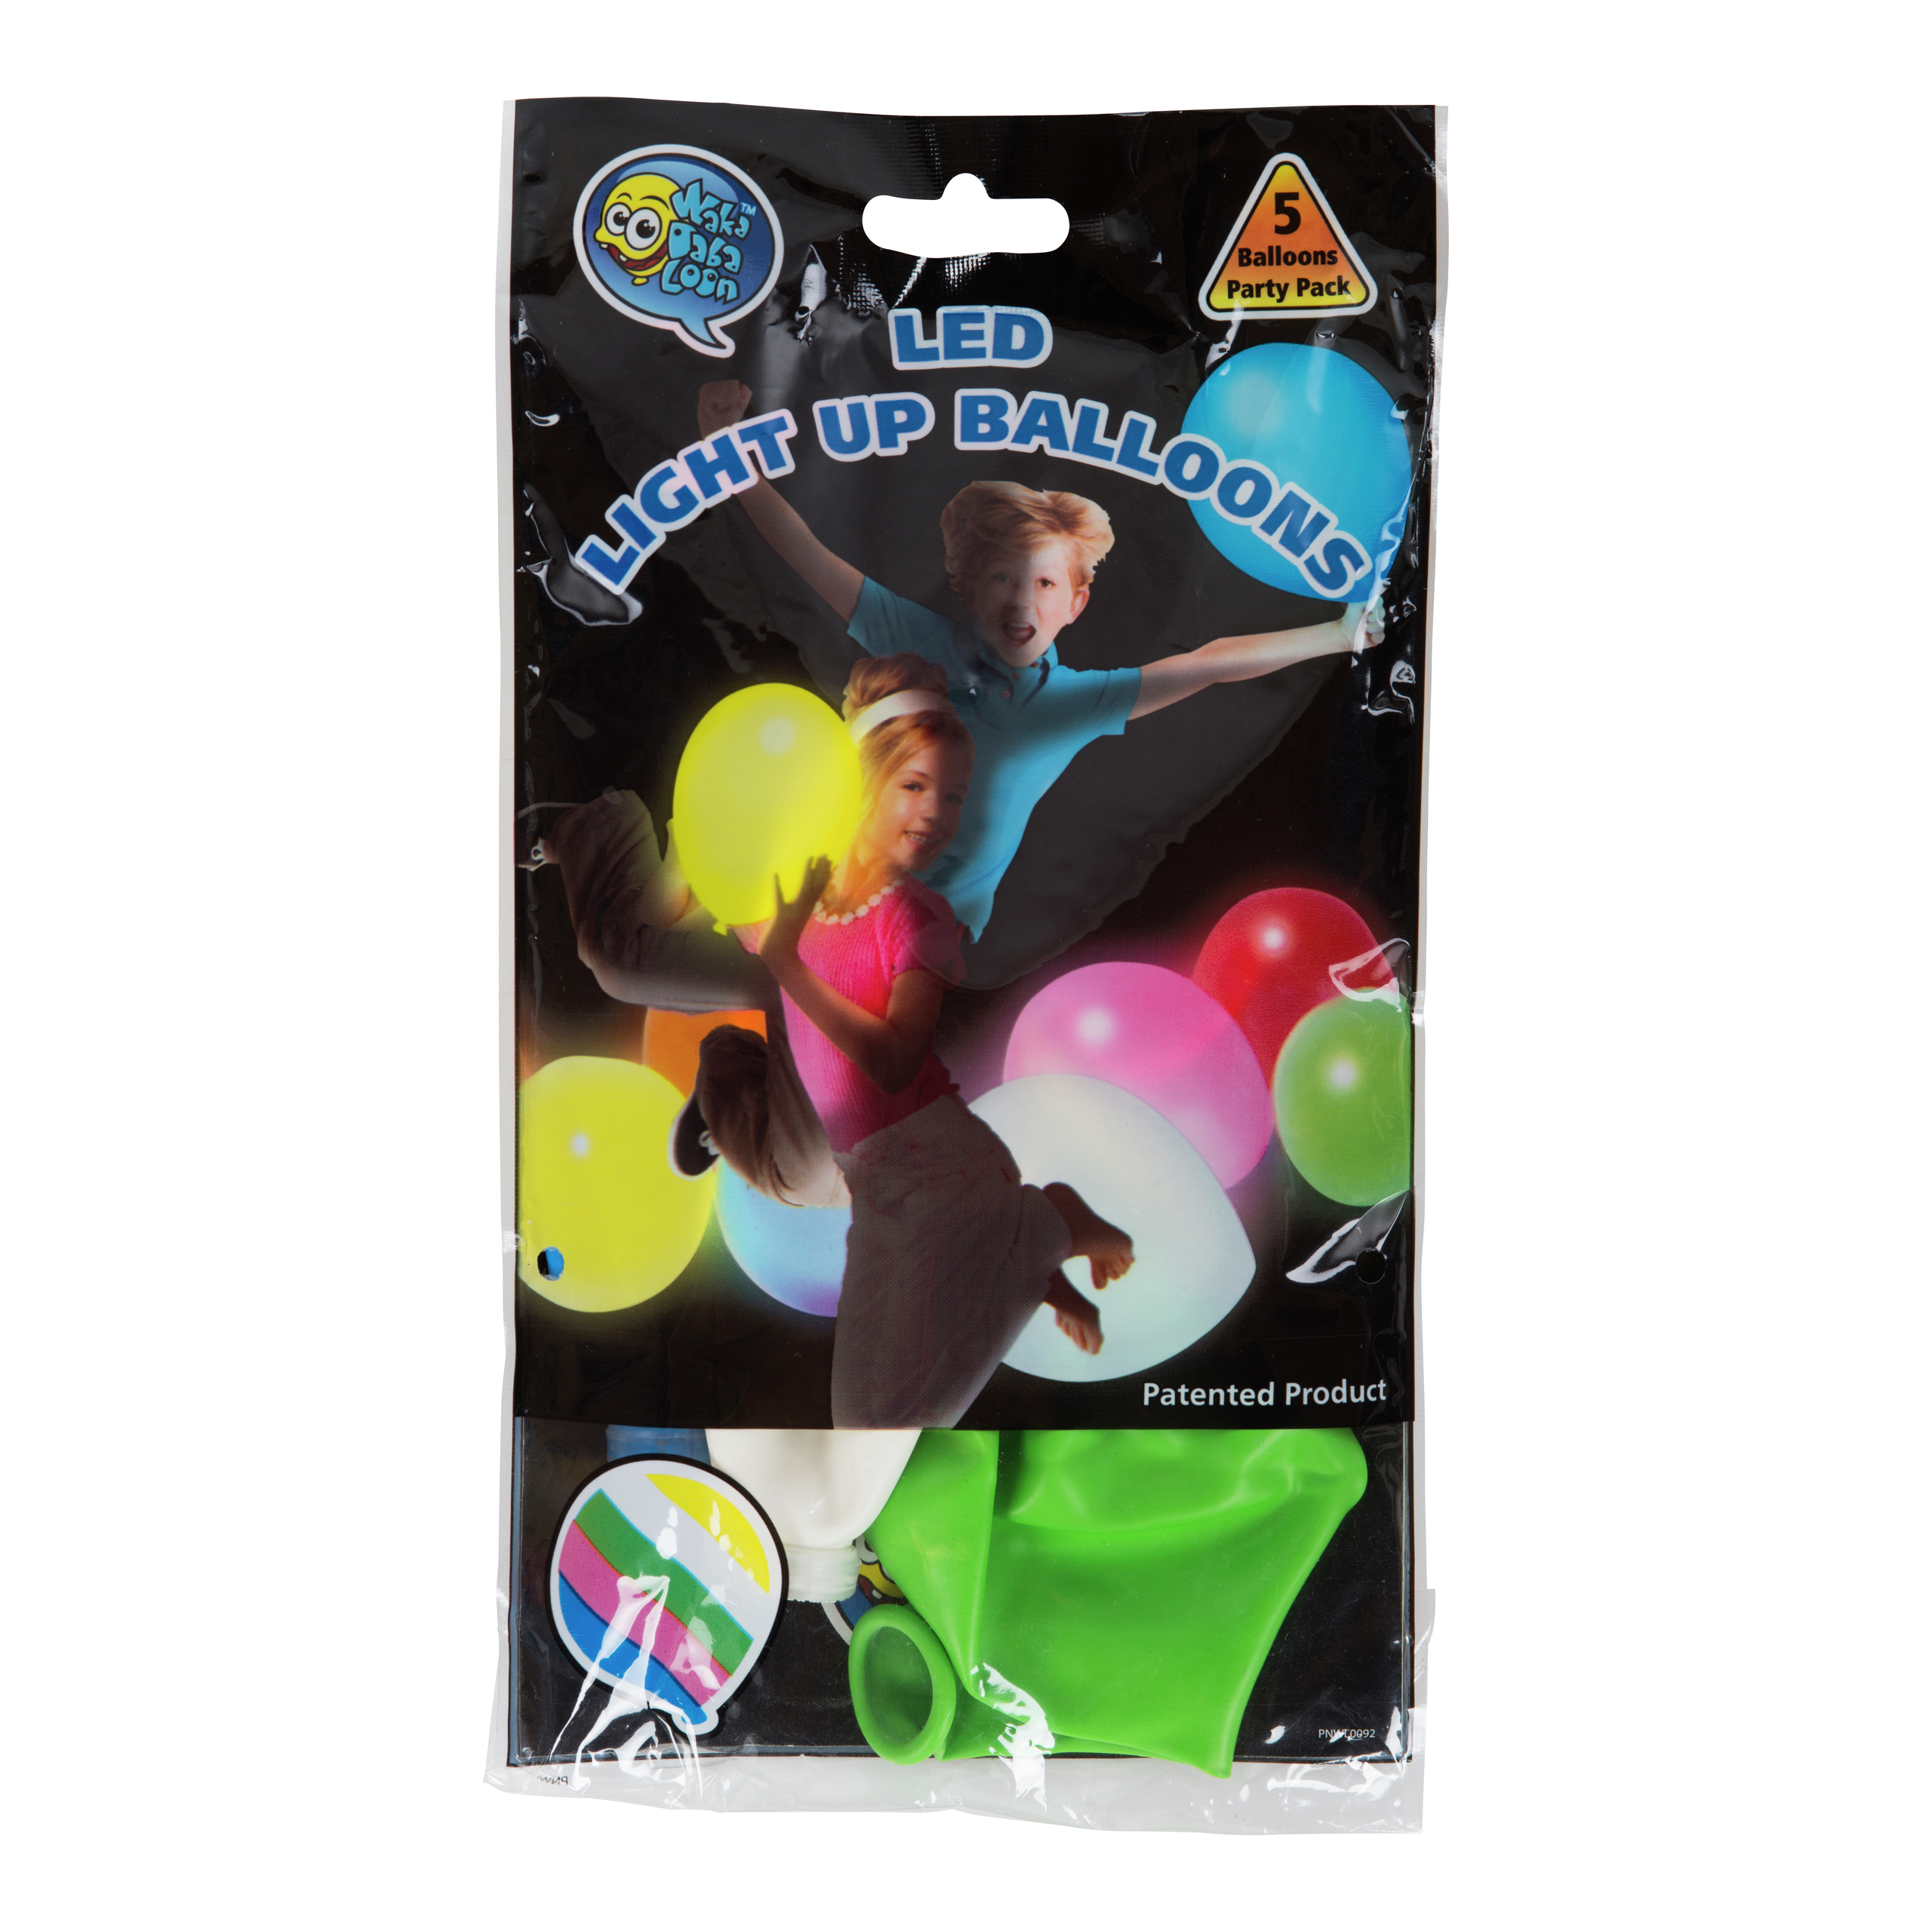 BALLONG M/LED LYS 5PK ASS-BAL062